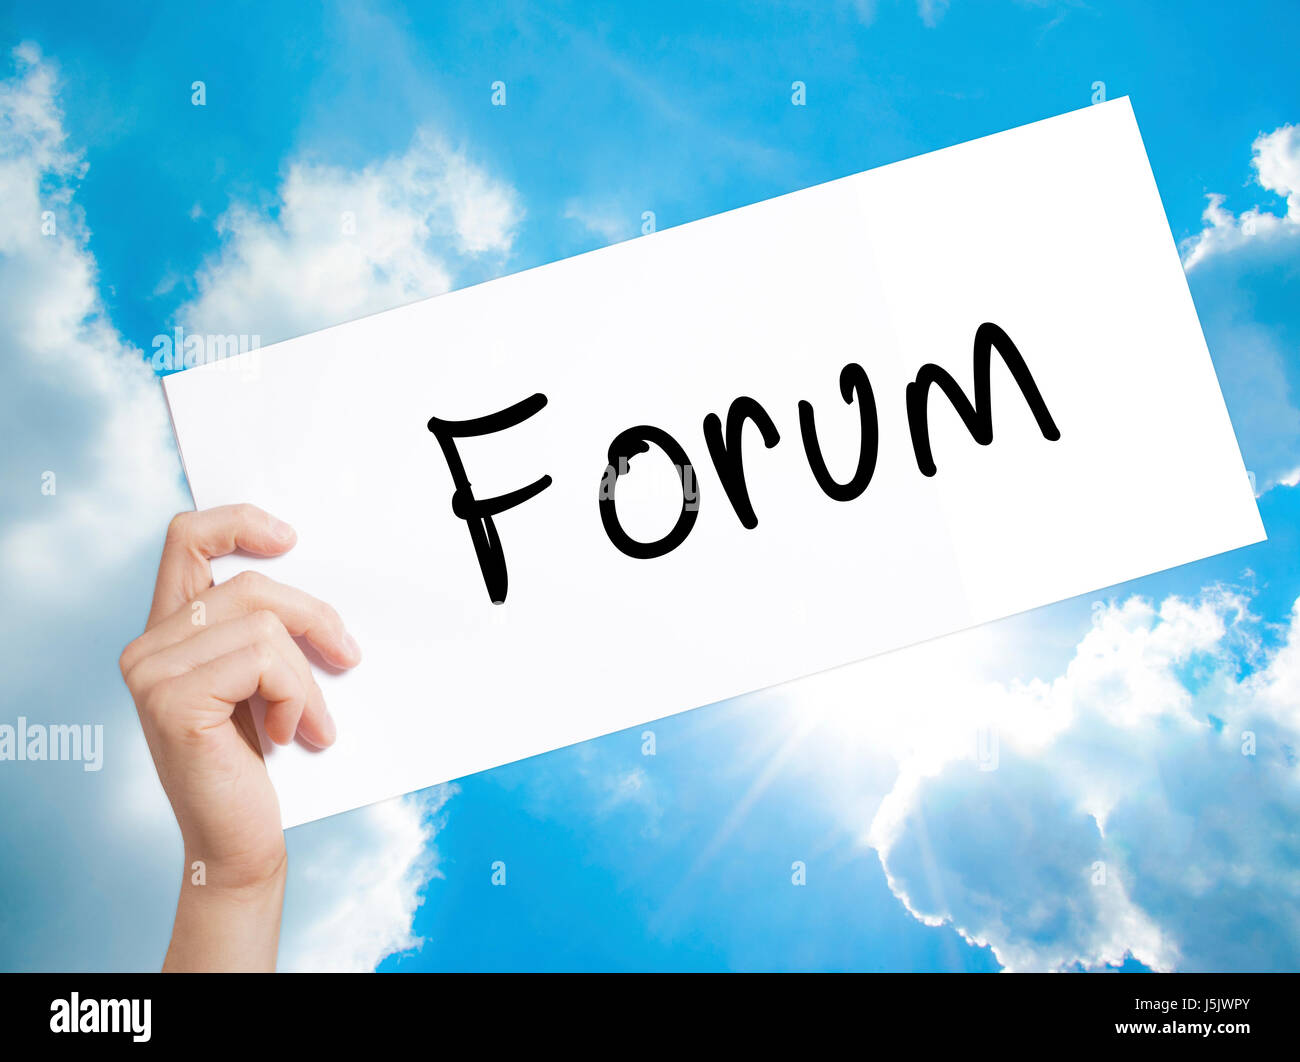 Forum black marker on visual screen.  Business concept. Stock Photo - Stock Image